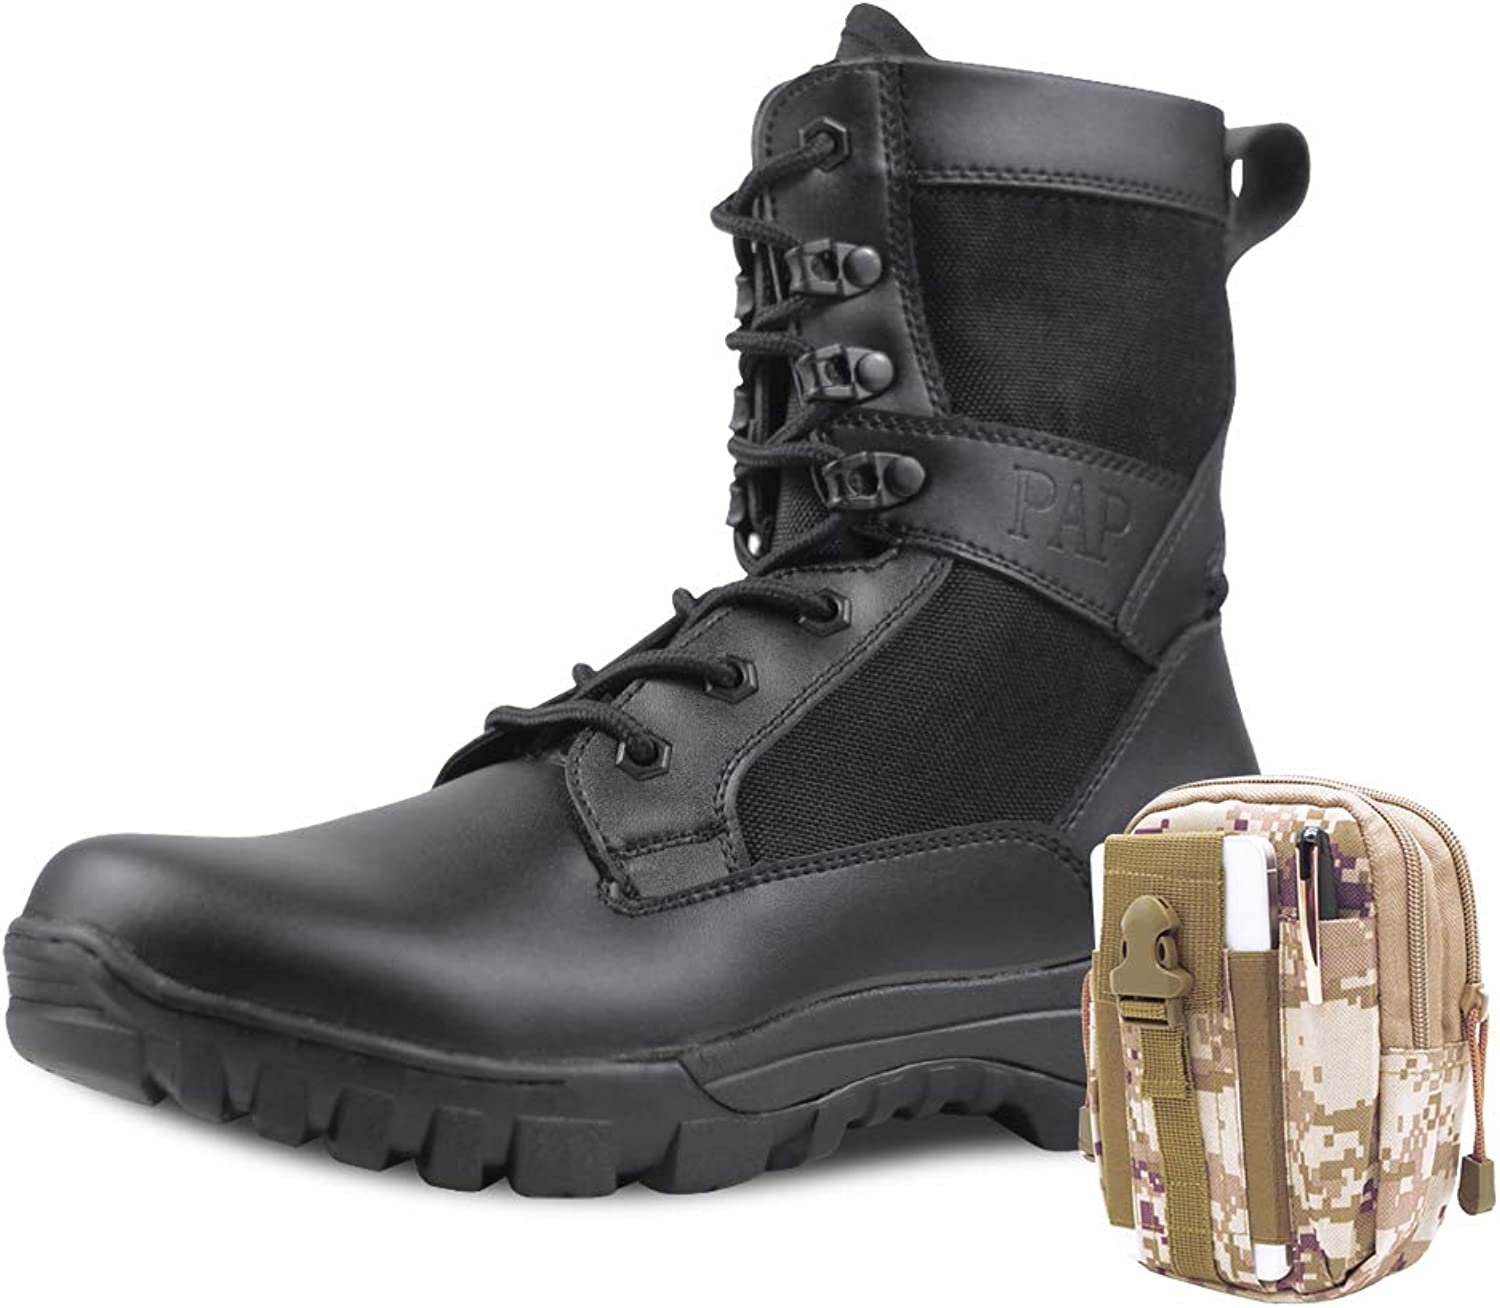 PANY Men's Military Boots Commando Light Jungle Work Boots Desert Tactical Boots with Military Waist Bag